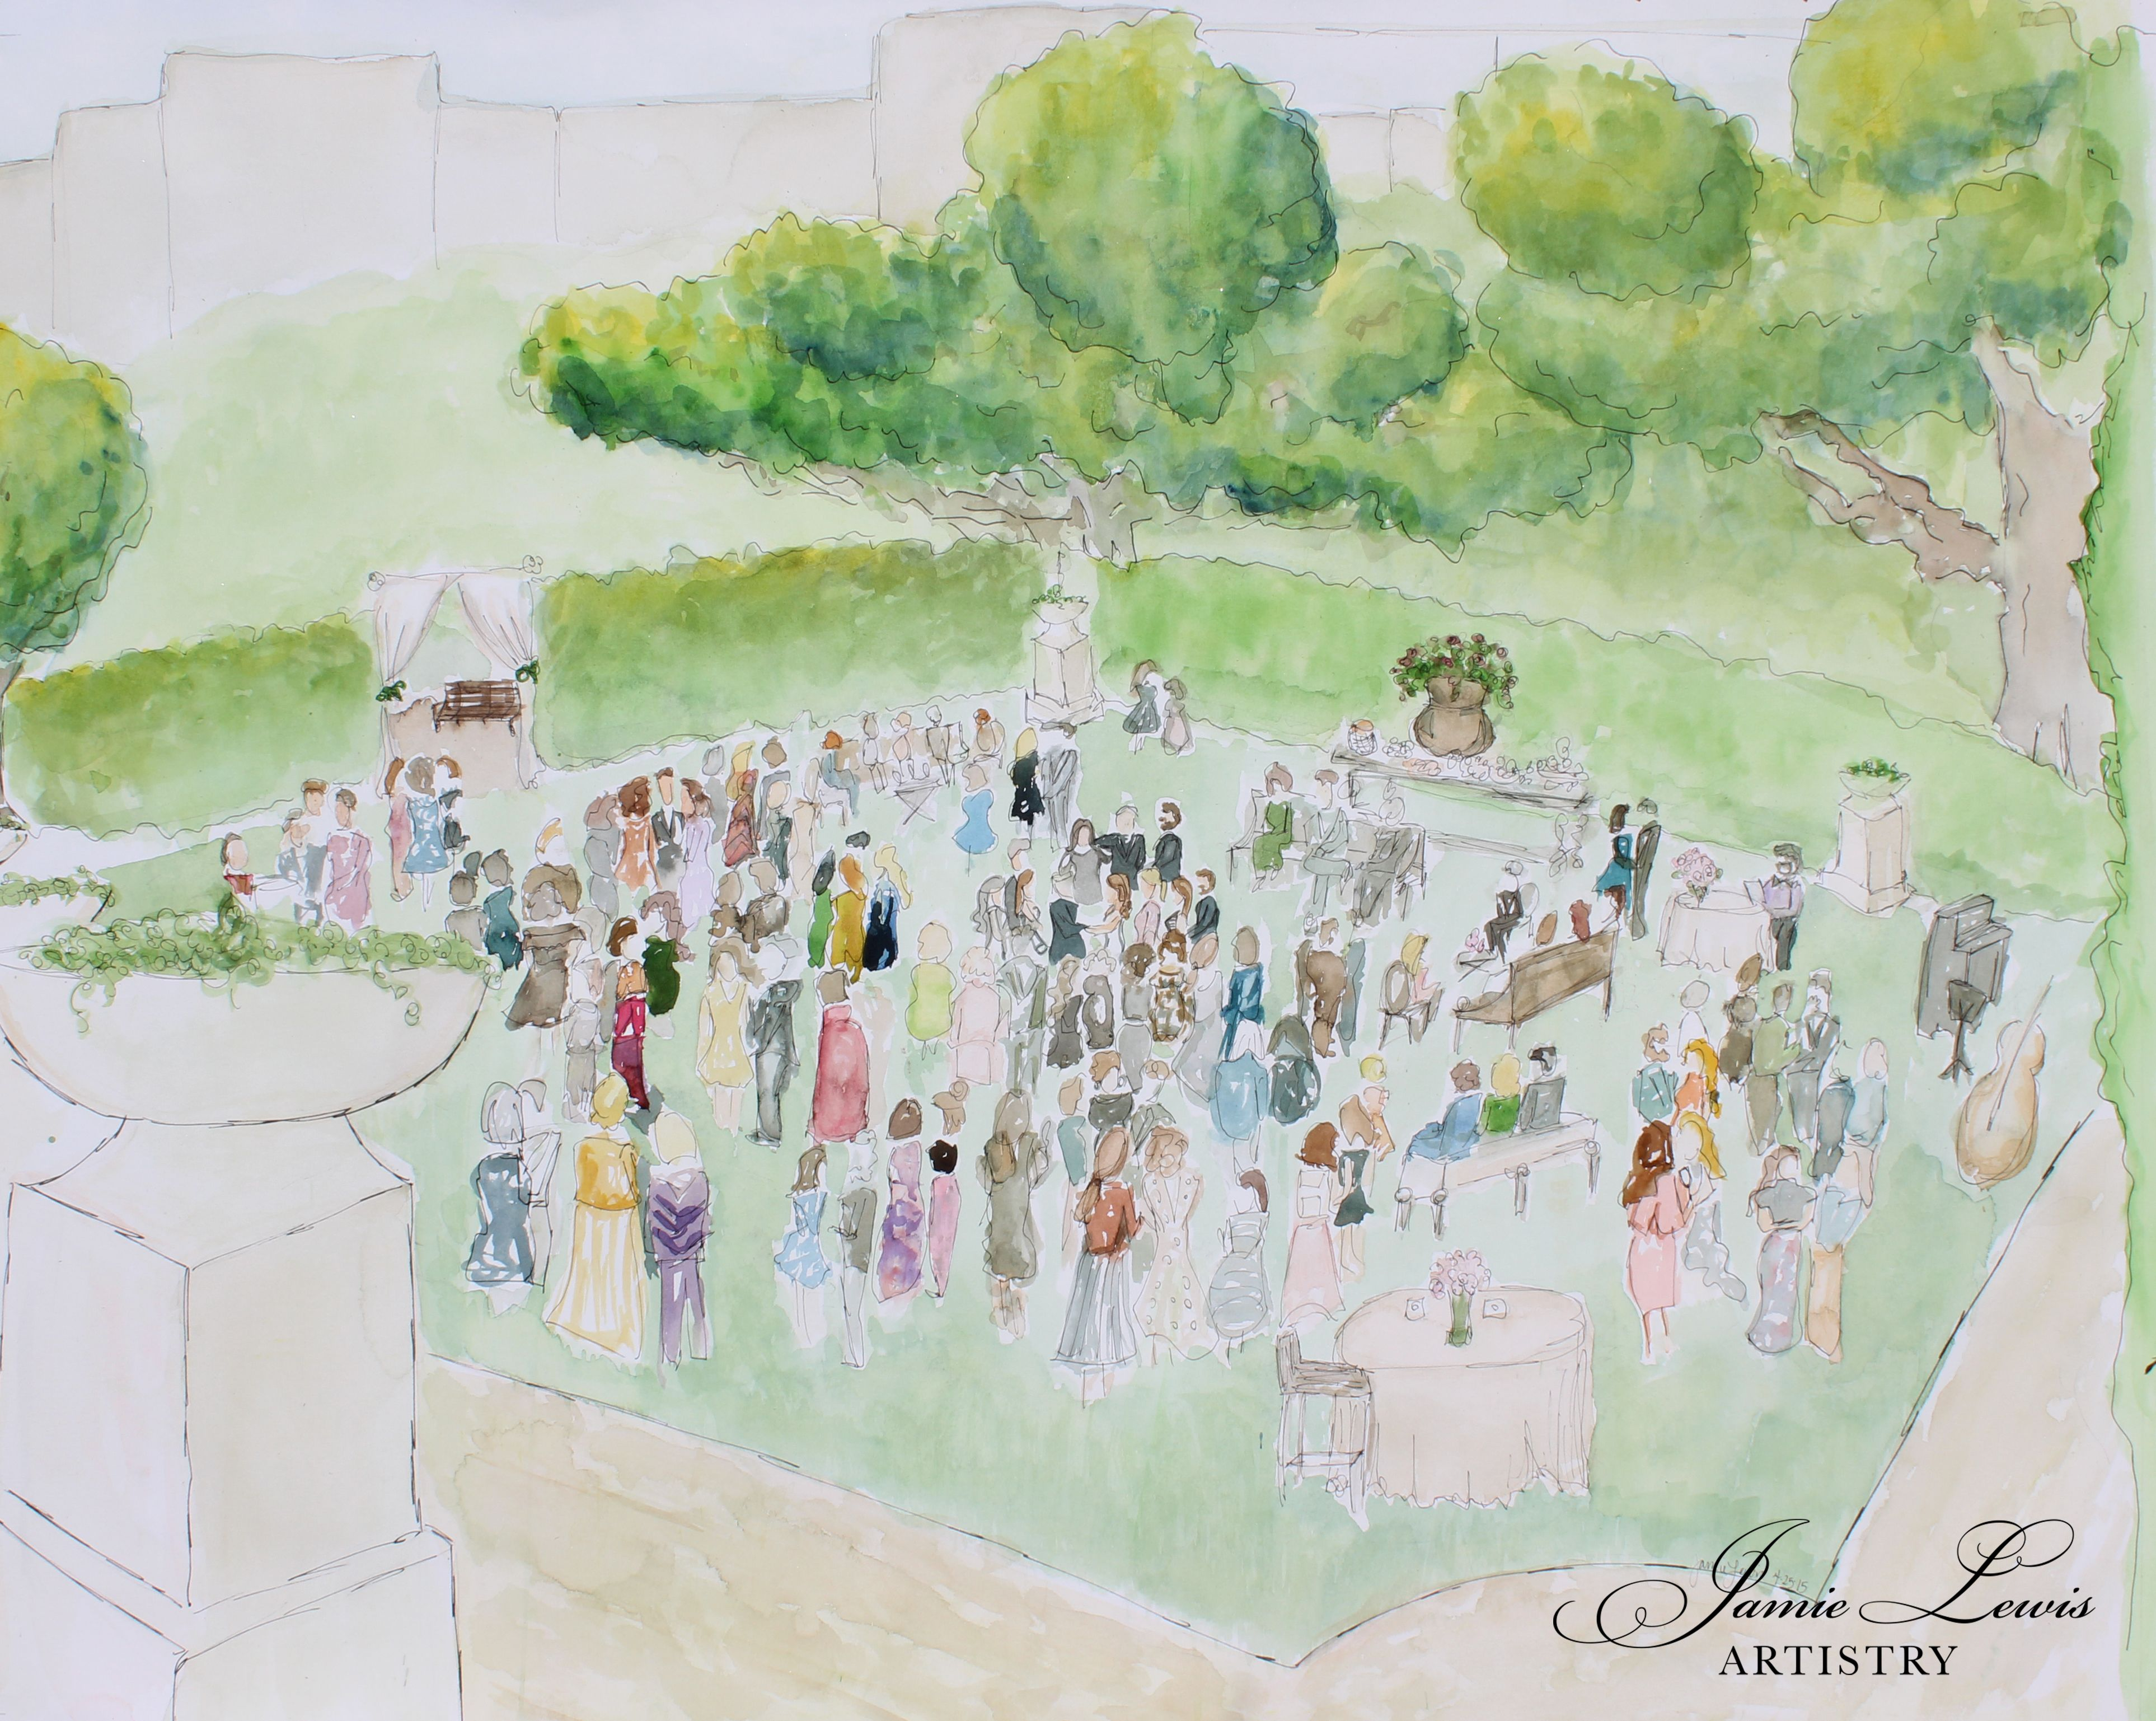 Watercolor art society houston tx - Herrman Park Celebration Garden Live Painting Watercolor Wedding Portrait Painted Live For The Guests To